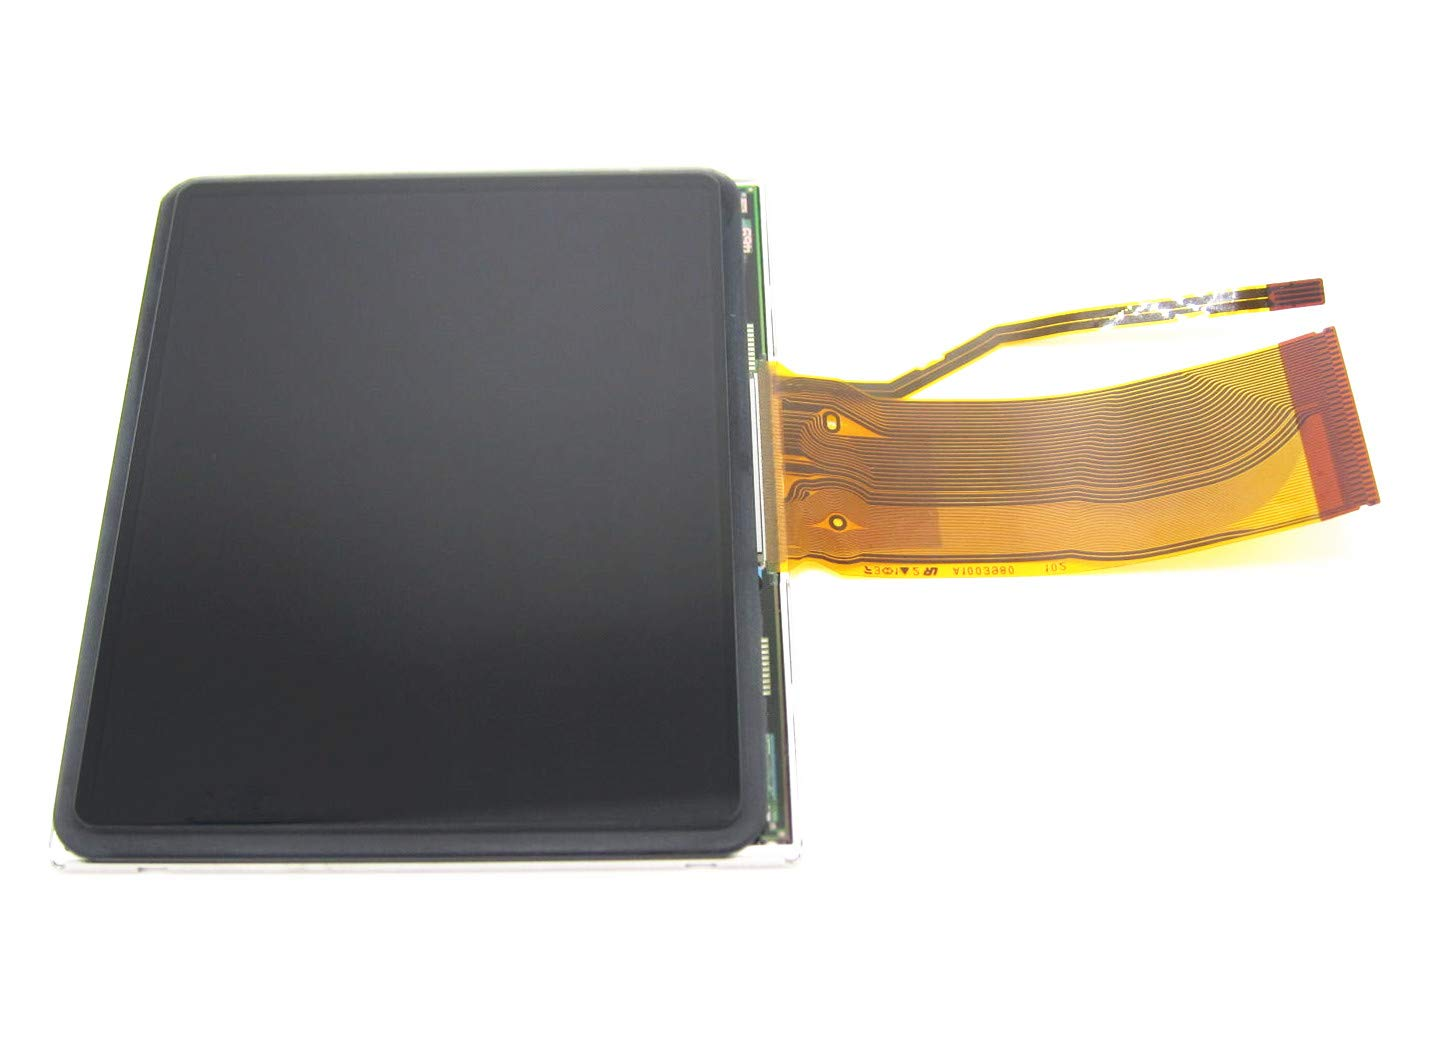 Replacement New LCD Screen Display with Backlight for Nikon D7200 D810 D750 Camera by mEOZIADao